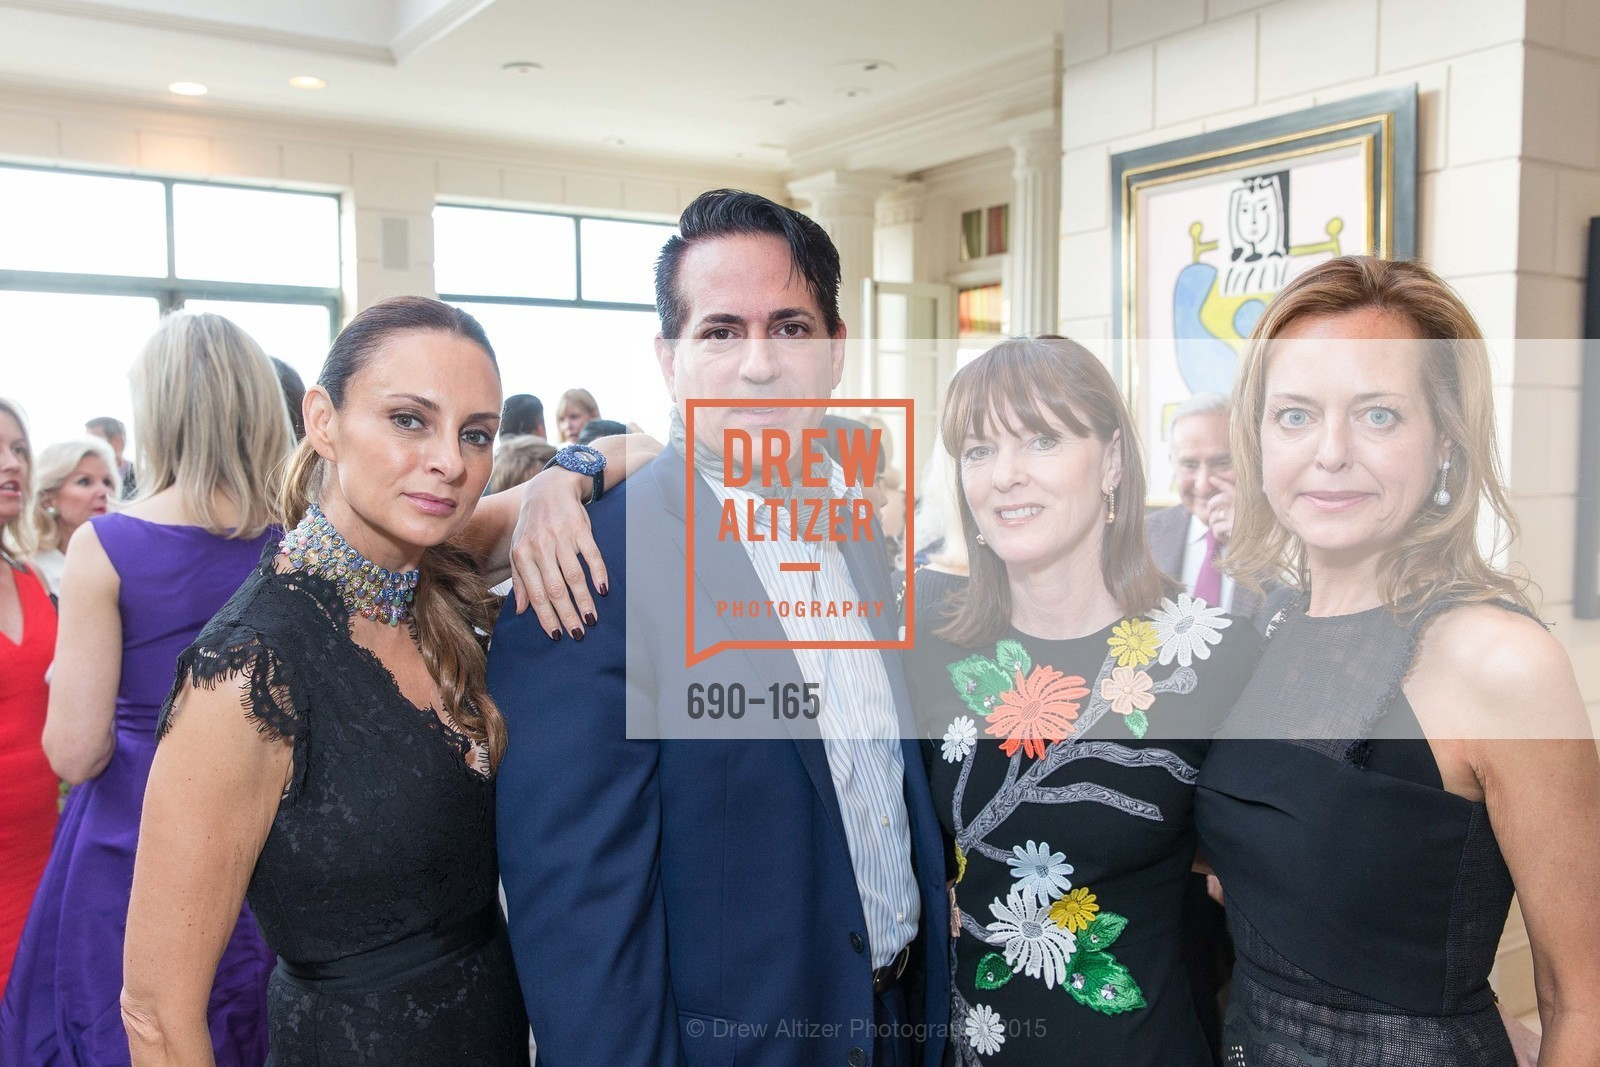 Sabrina Baldieri, Giovanni Mattera, Allison Speer, Charlot Malin, Opera Ball 2015 Benefactor Party Hosted By Diane Wilsey, Private residence, June 16th, 2015,Drew Altizer, Drew Altizer Photography, full-service agency, private events, San Francisco photographer, photographer california